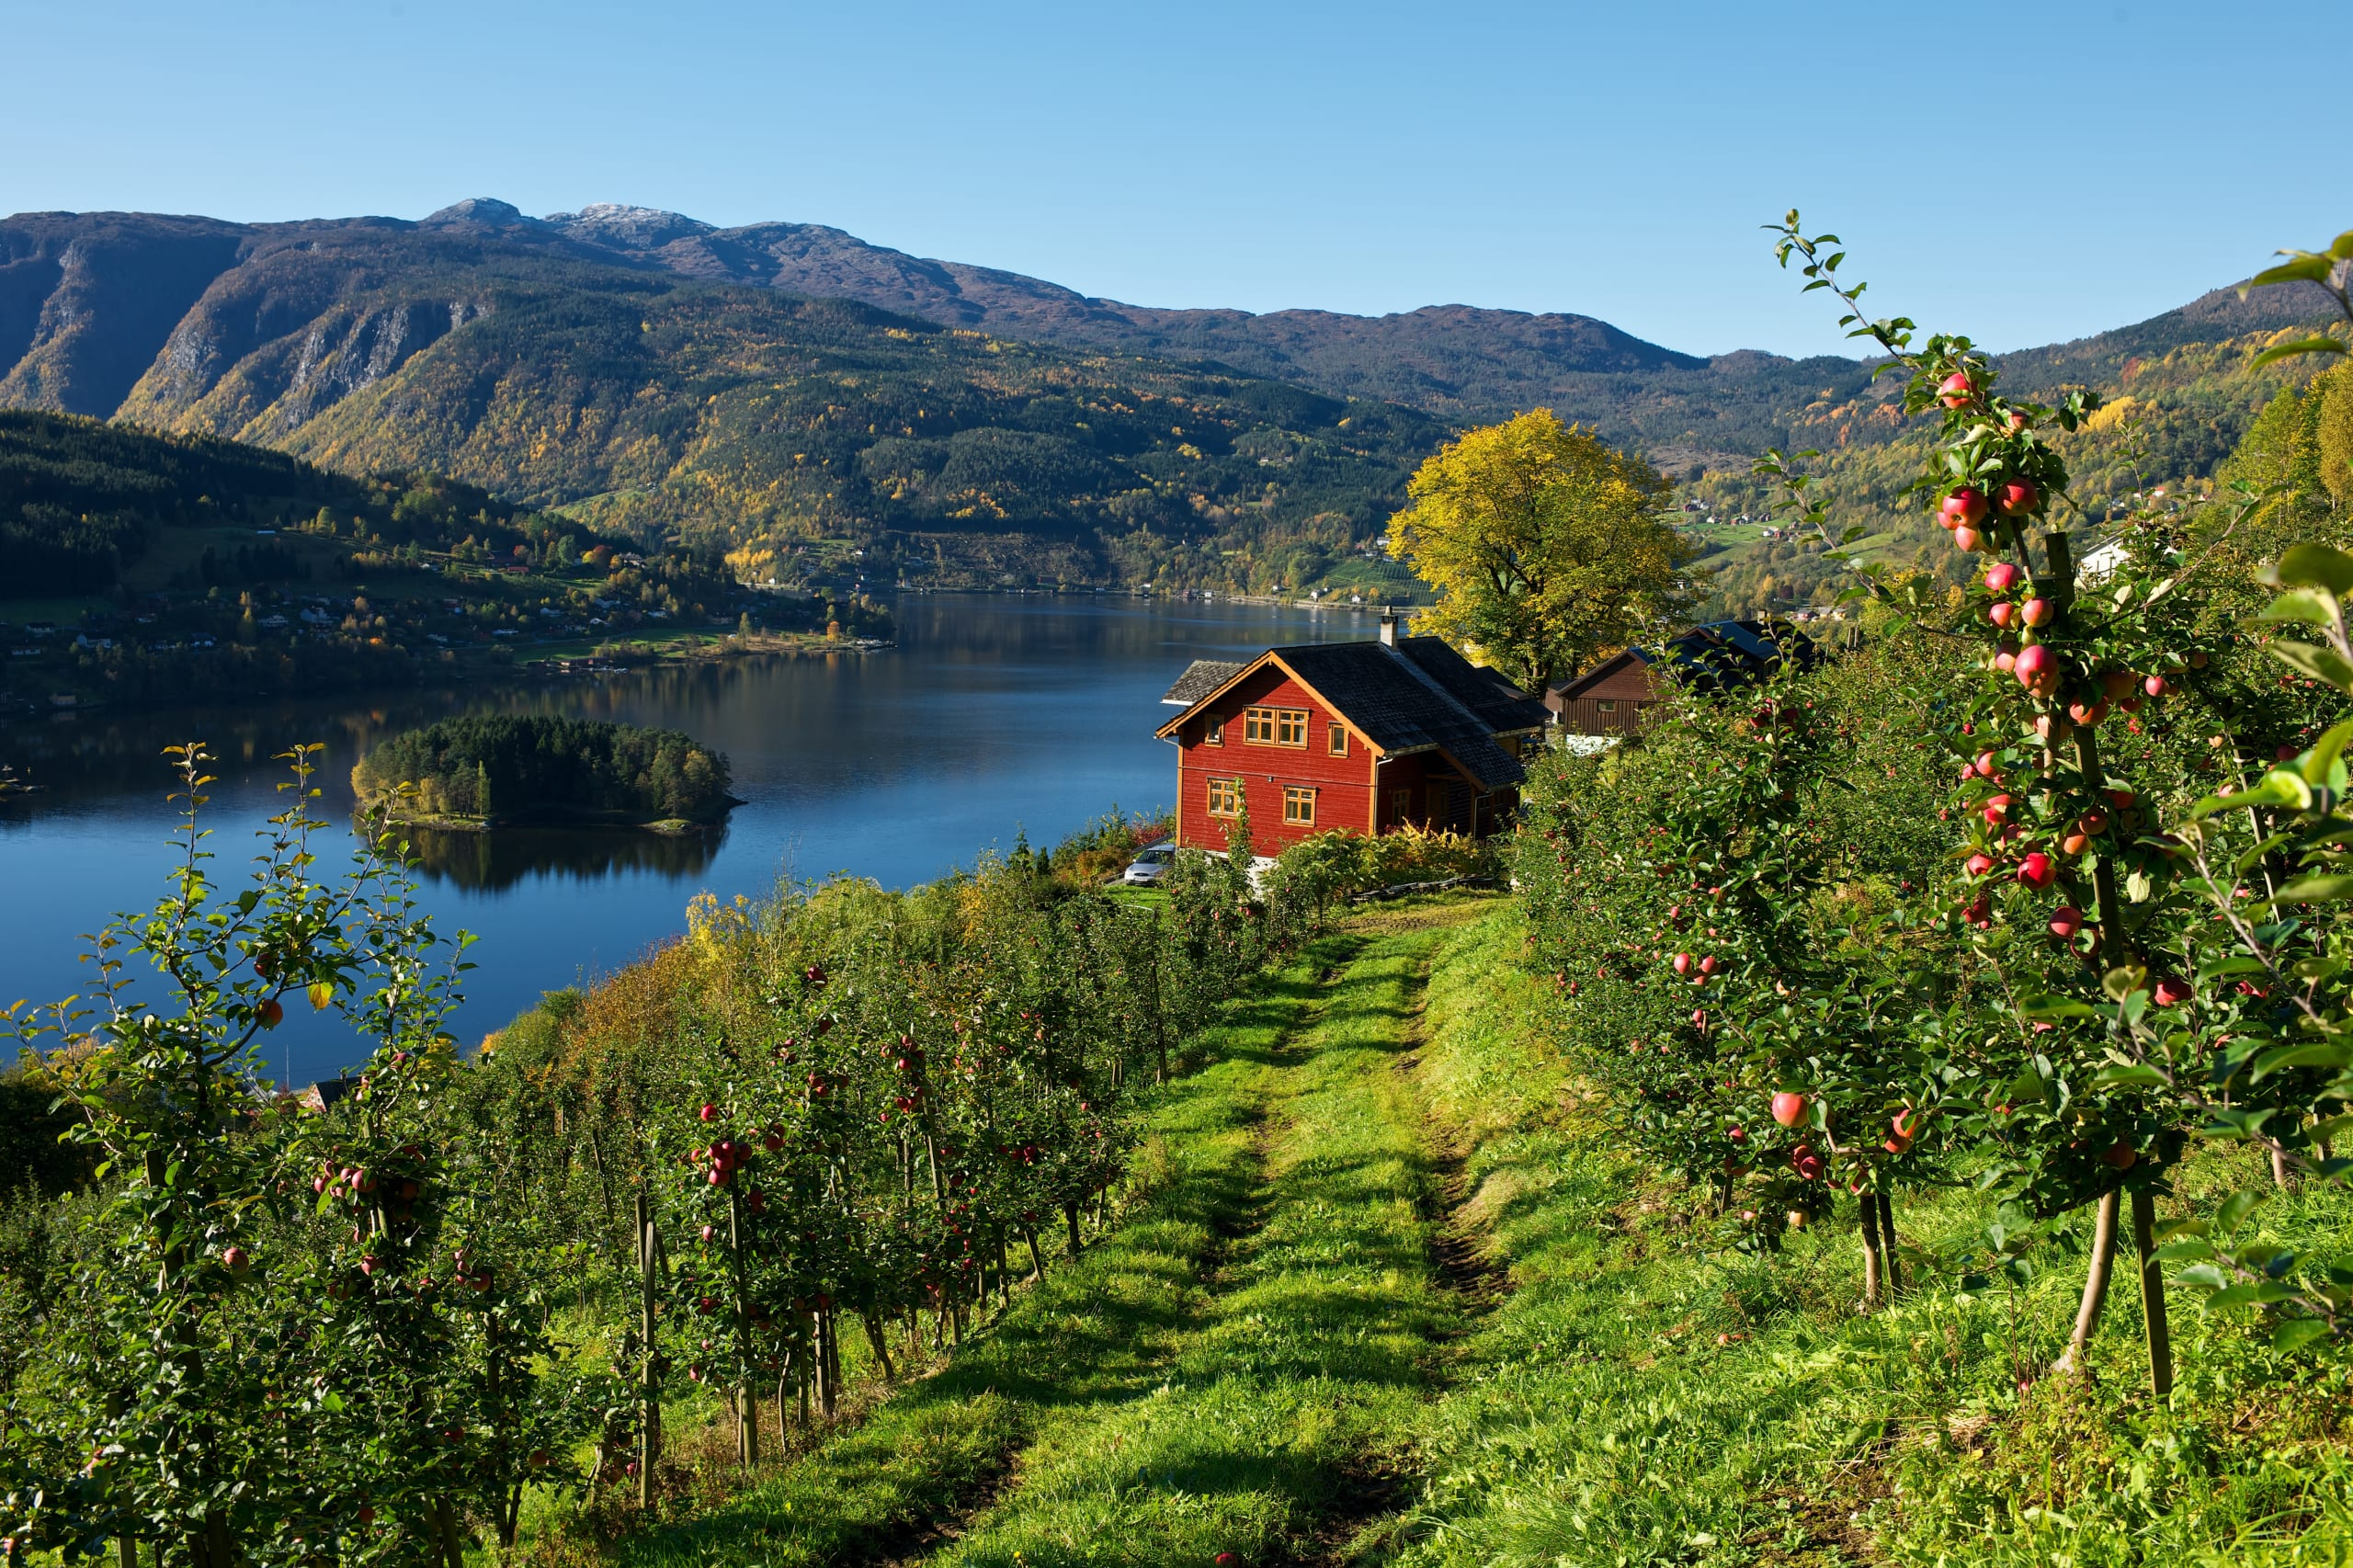 Apple farm in Hardanger